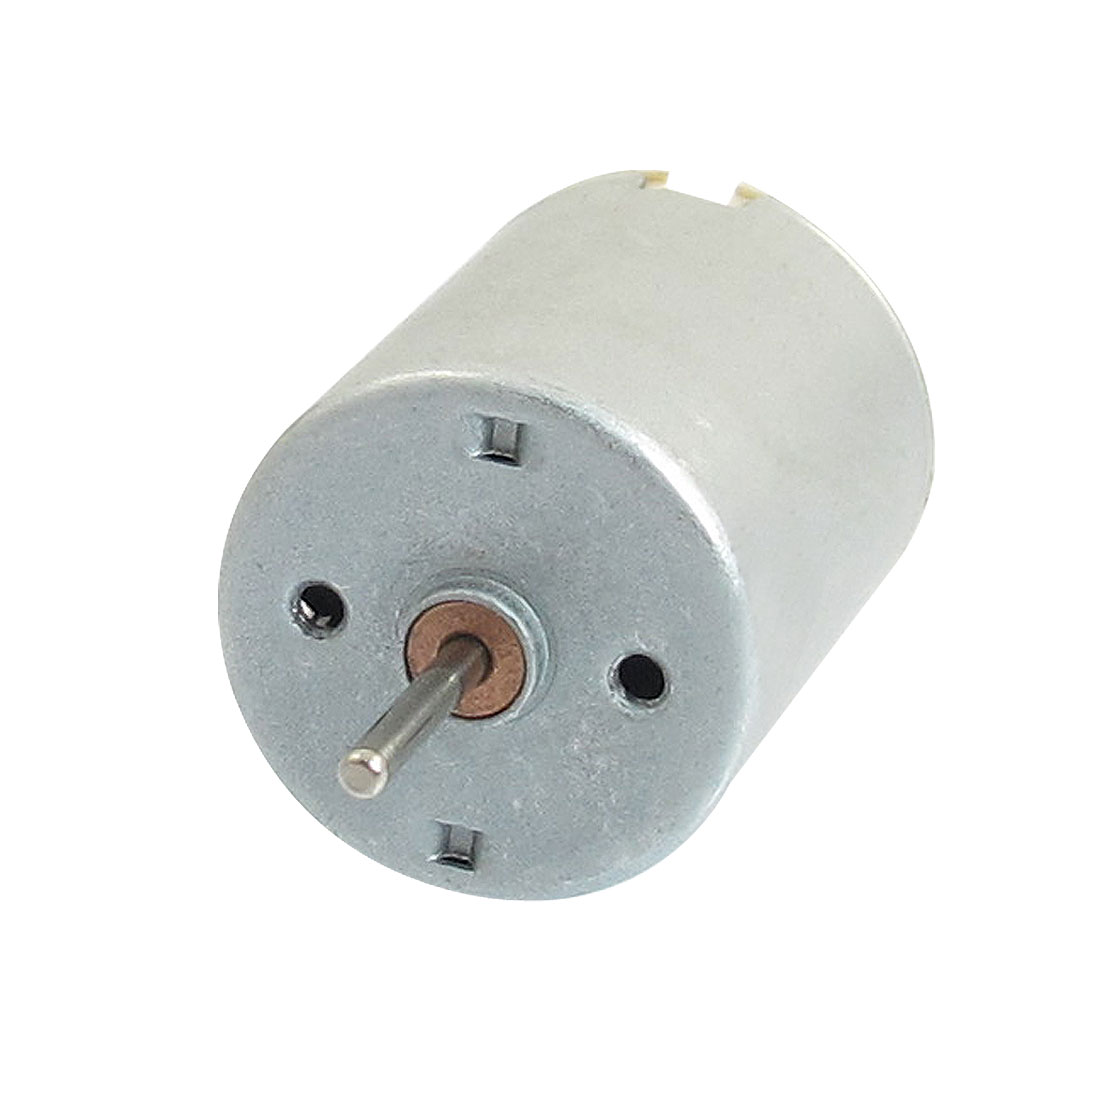 Uxcell(R) 5000 RPM 6V High Torque Cylinder Magnetic Electric Mini DC Motor